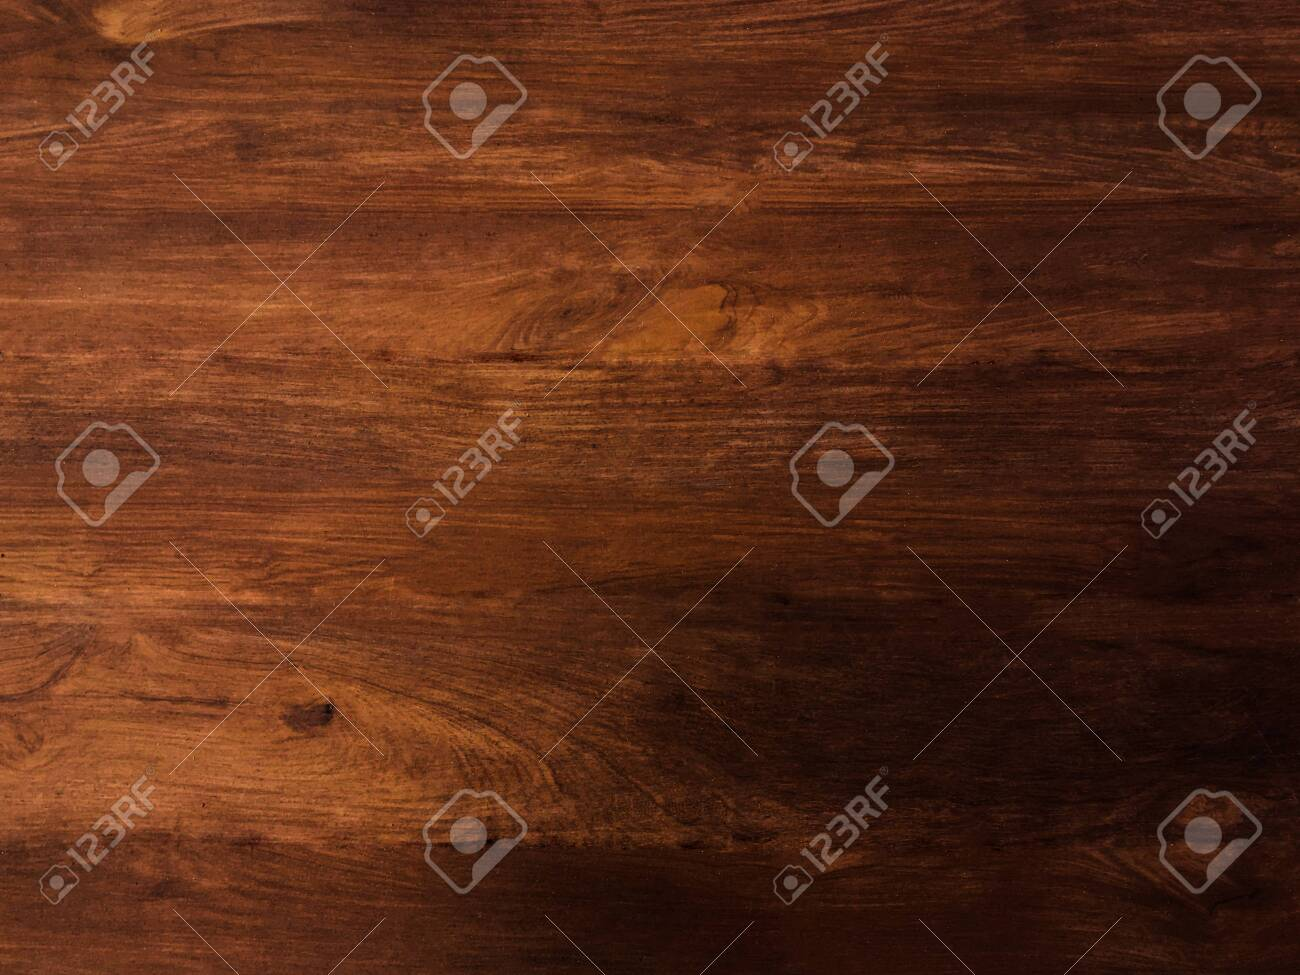 Brown wooden plank texture background for design with copy space - 144989767